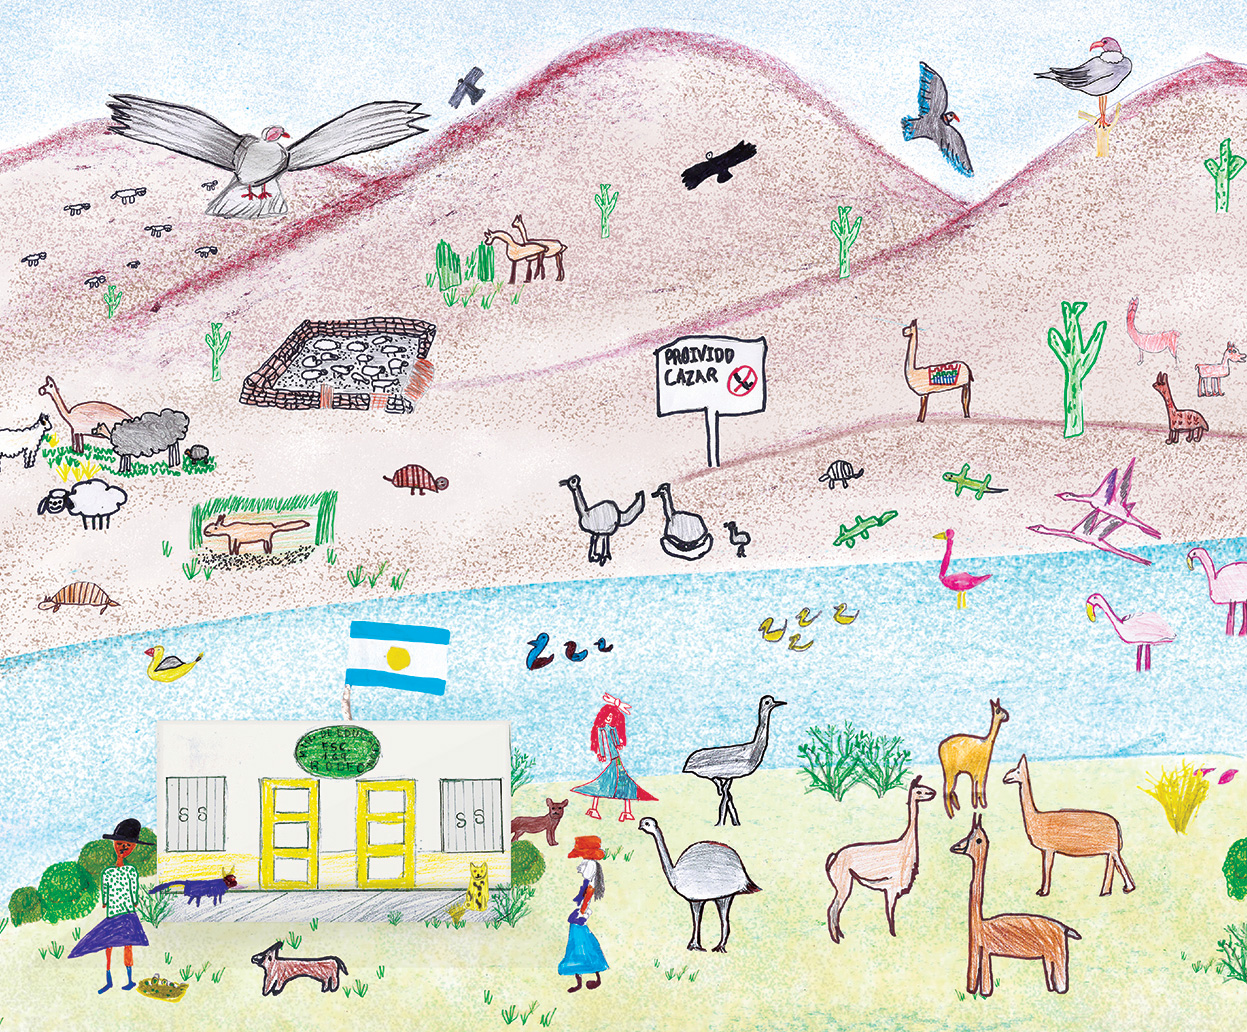 Biodiversity collage made by children of 3 schools from the Pozuelos MAB Reserve in Jujuy. Photo by Mercedes Tregoning